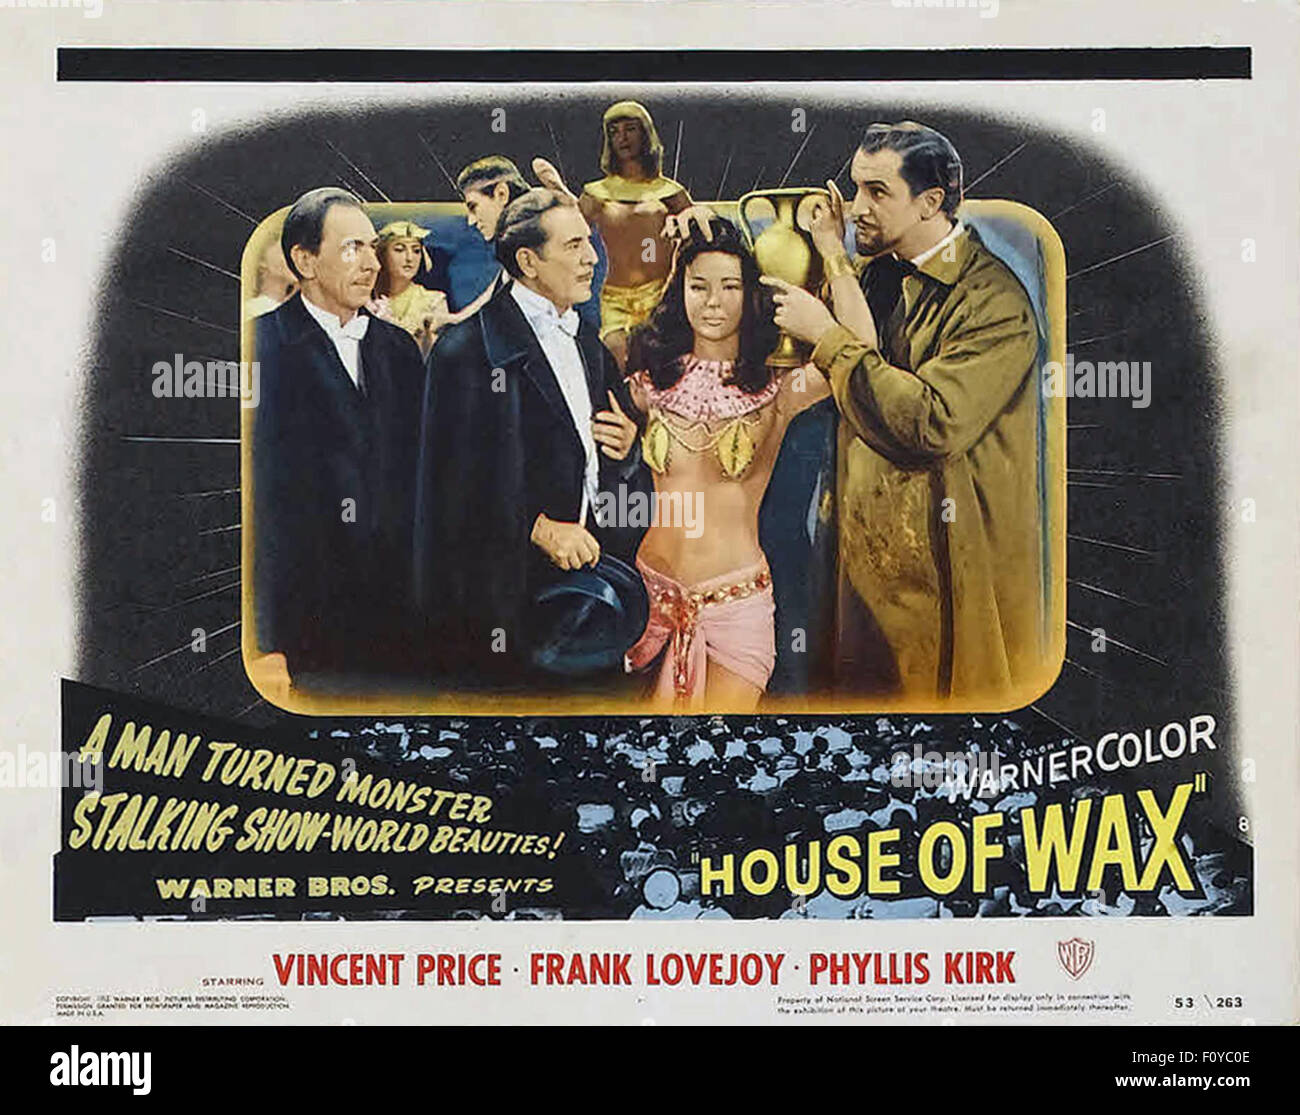 Search Results For House Of Wax 01 Movie Poster Stock Photos And Images